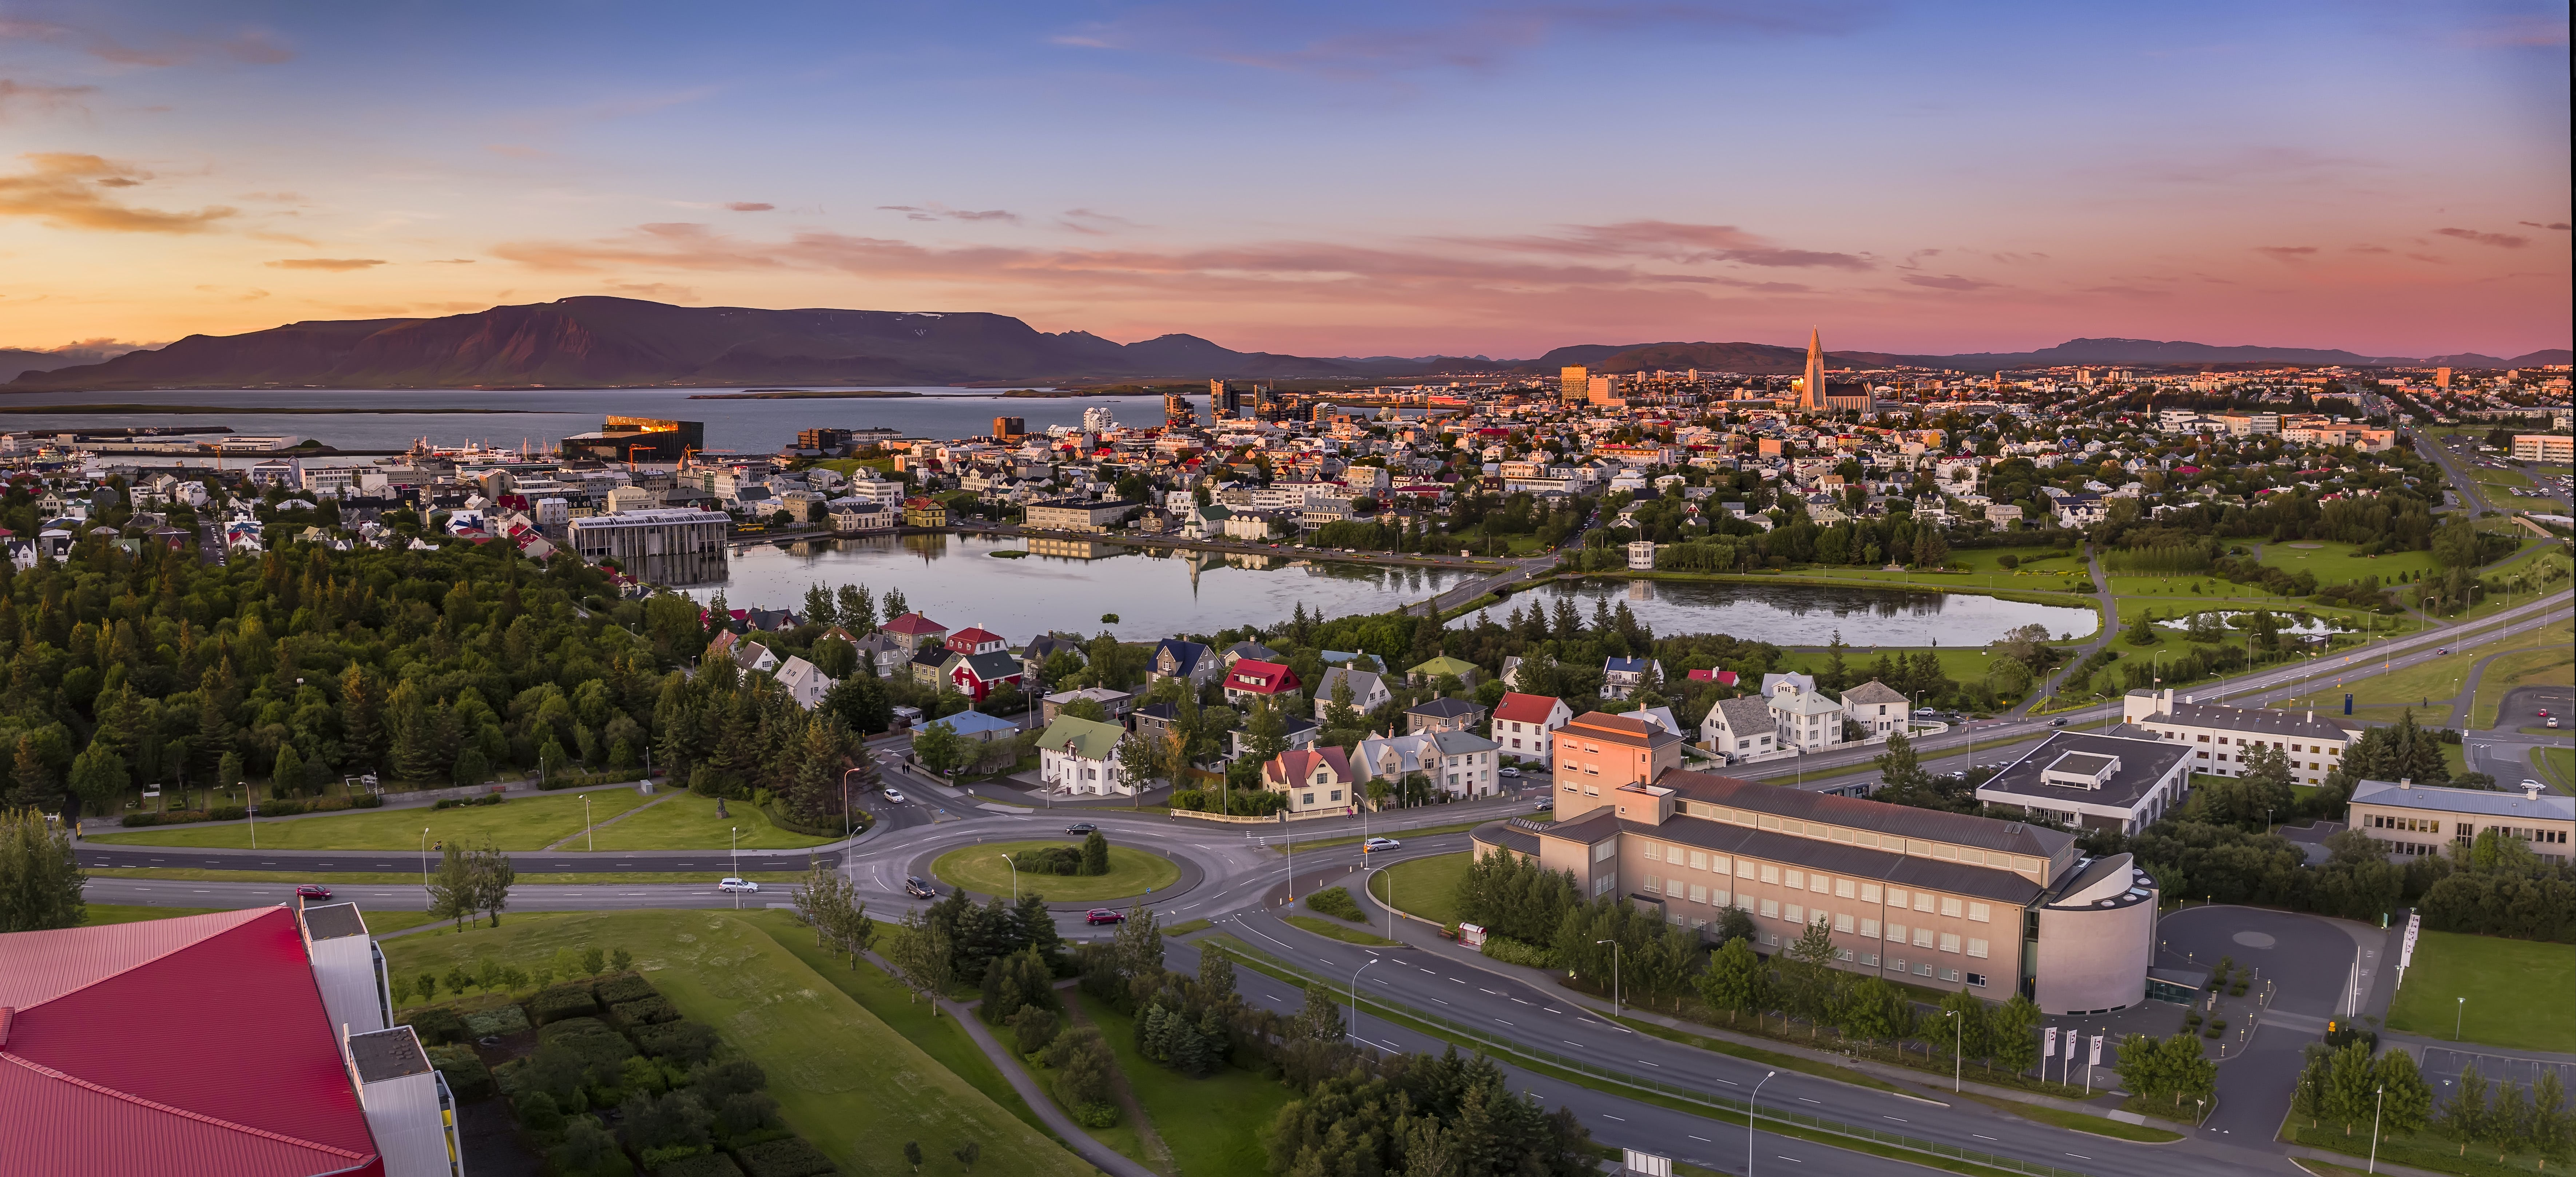 Explore the city of Reykjavík with a 24-Hour City Card.